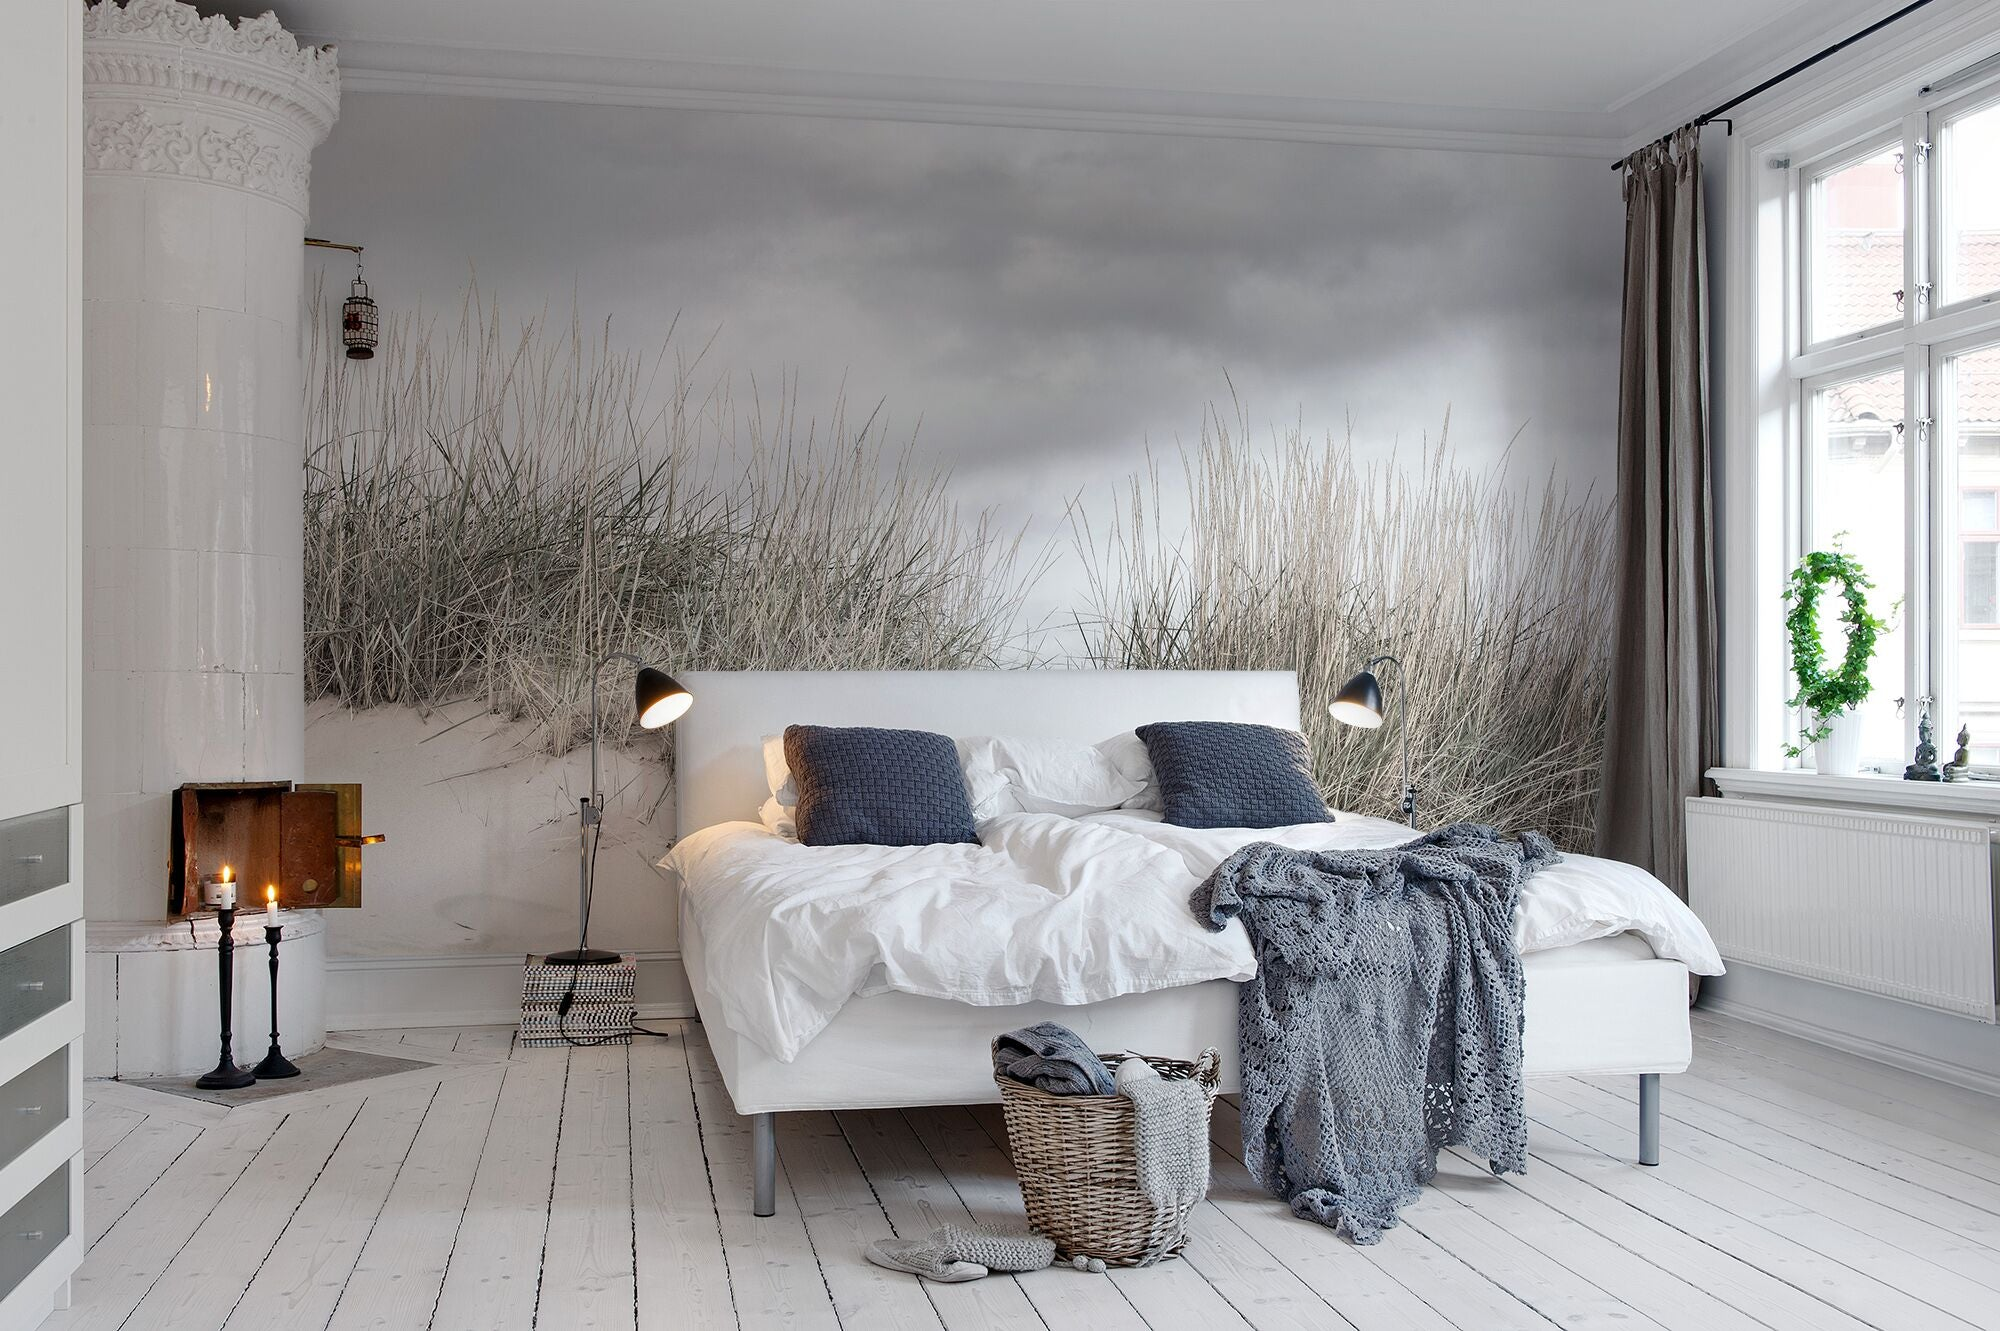 Pale Seashore Mural Wallpaper (SqM)